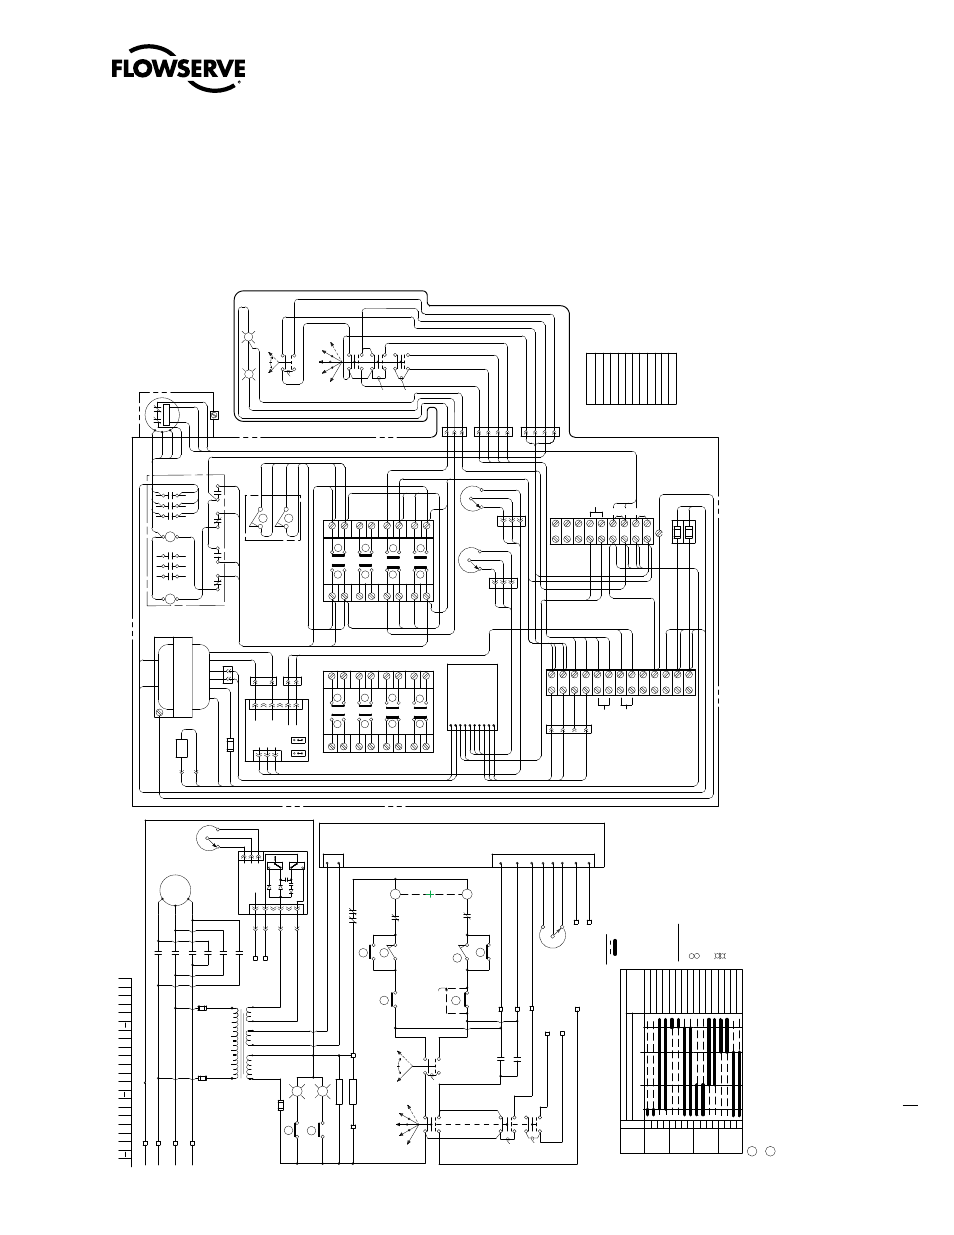 1 typical wiring diagram, Three-phase with control package